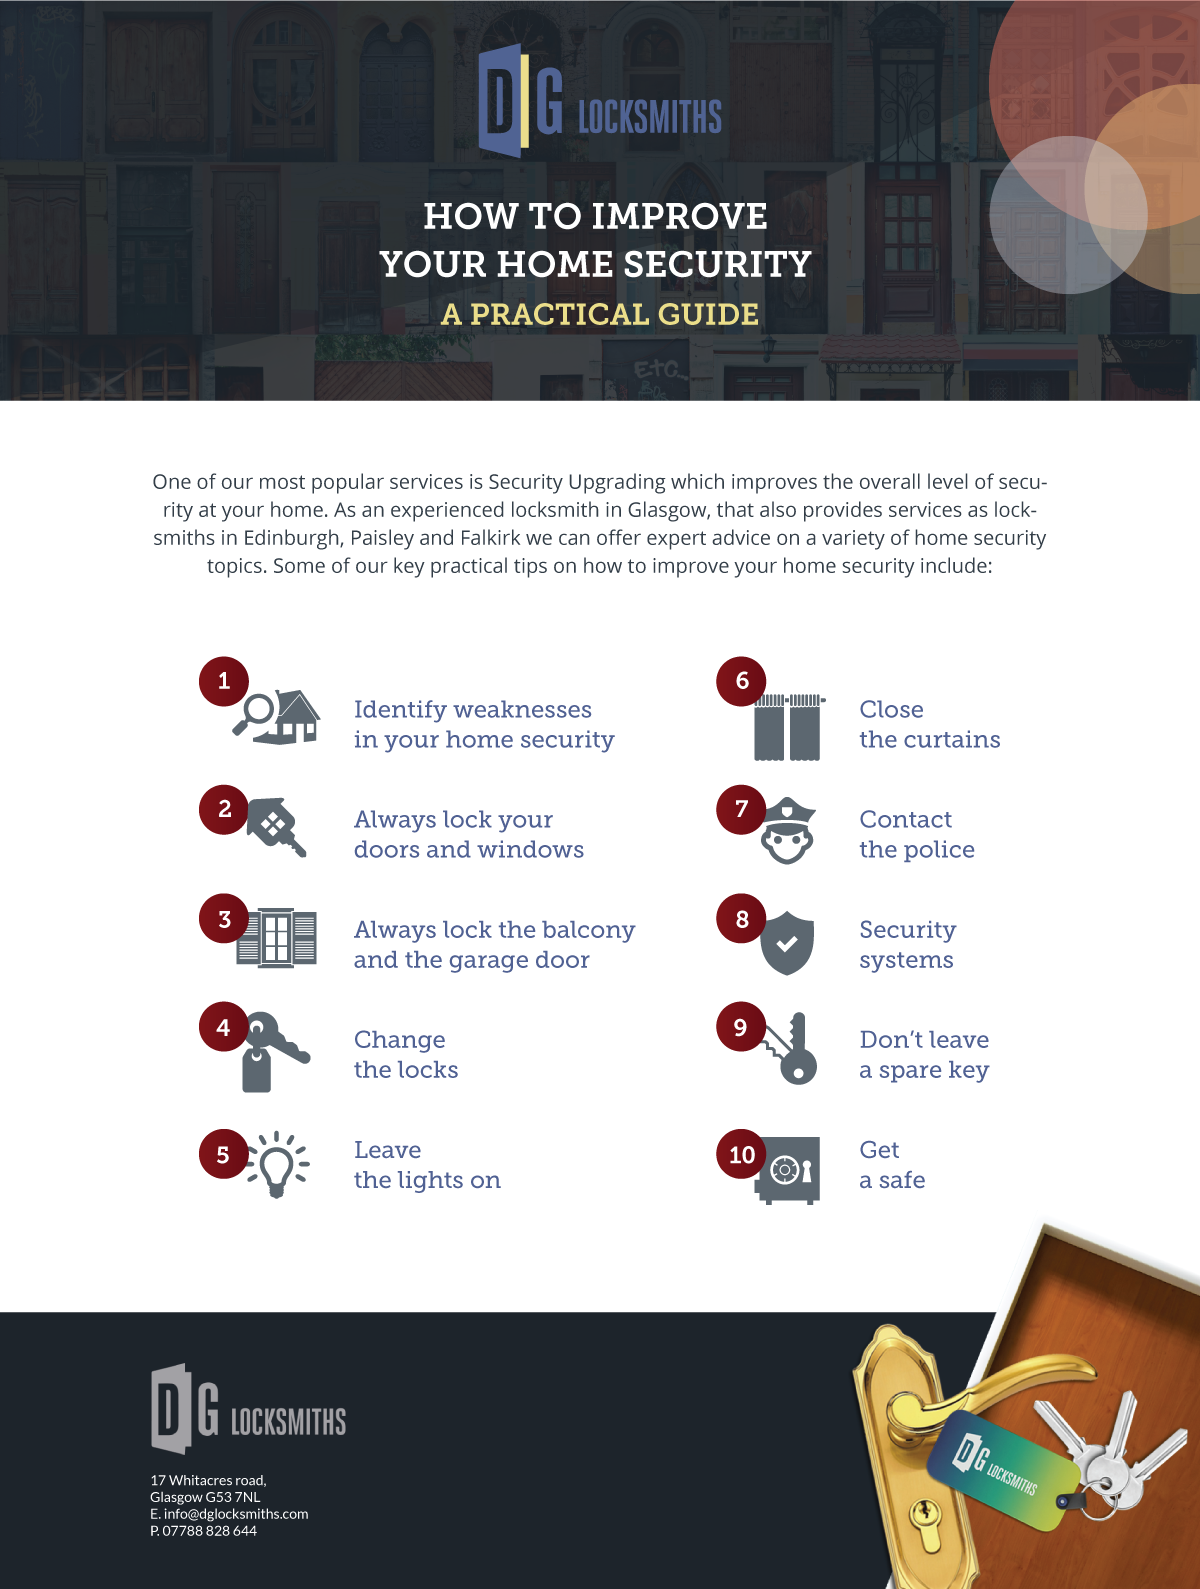 How-to-Improve-Your-Home-Security-a-Practical-Guide